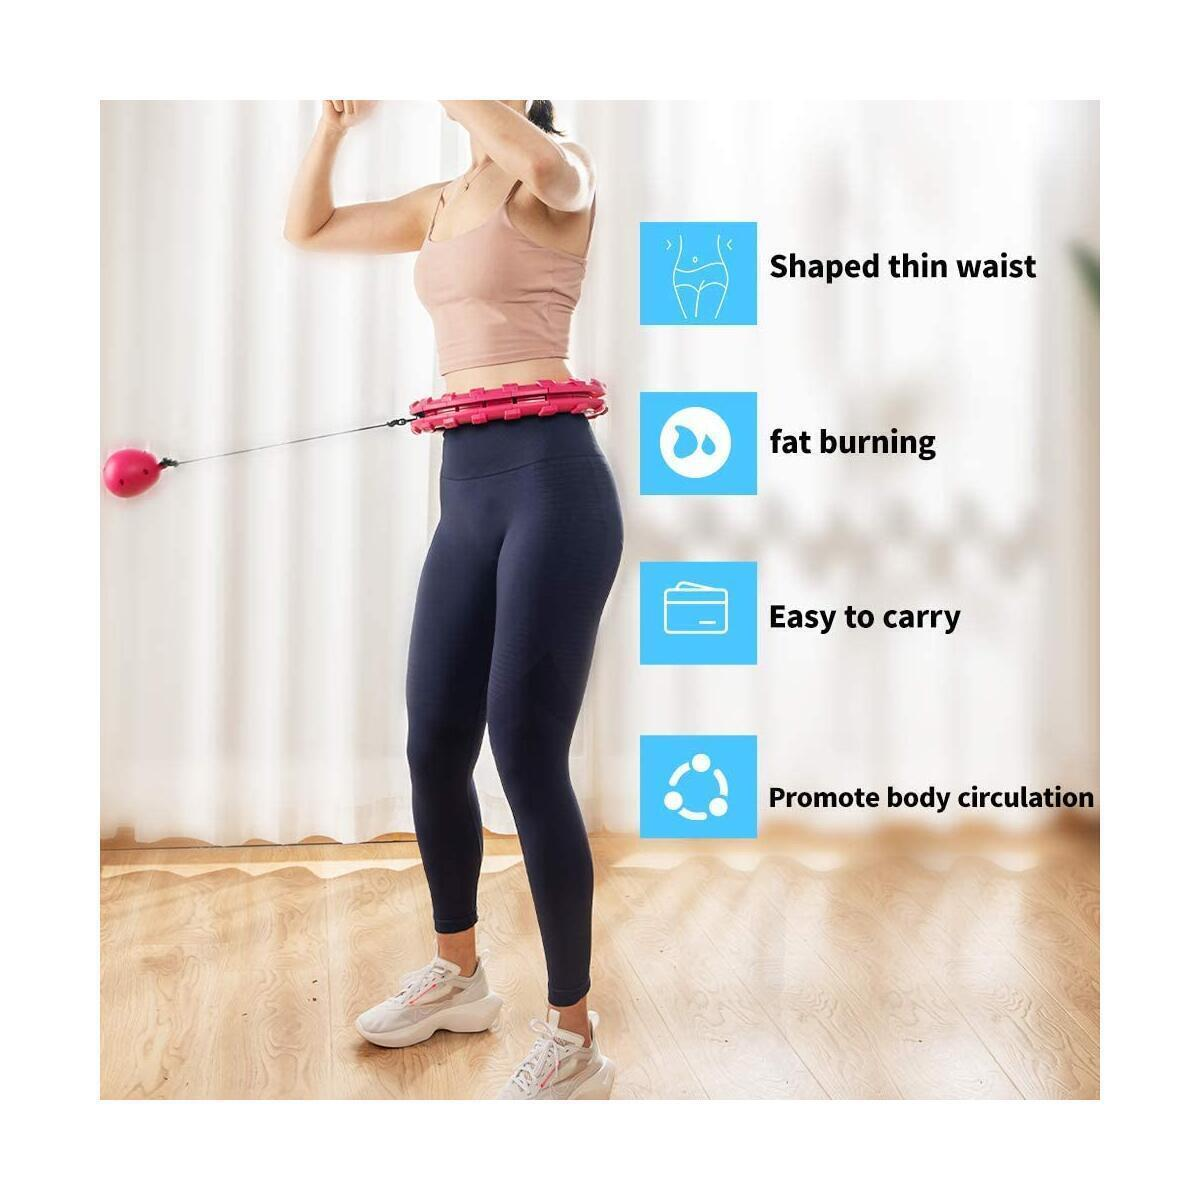 Smart Hula Hoop for Adults Weight Loss, Weighted Hula Hoop for Exercise 24 Detachable Knots do not Fall Off Fitness Circle, Thin Waist and Abdomen for Home Beginner Kids Women